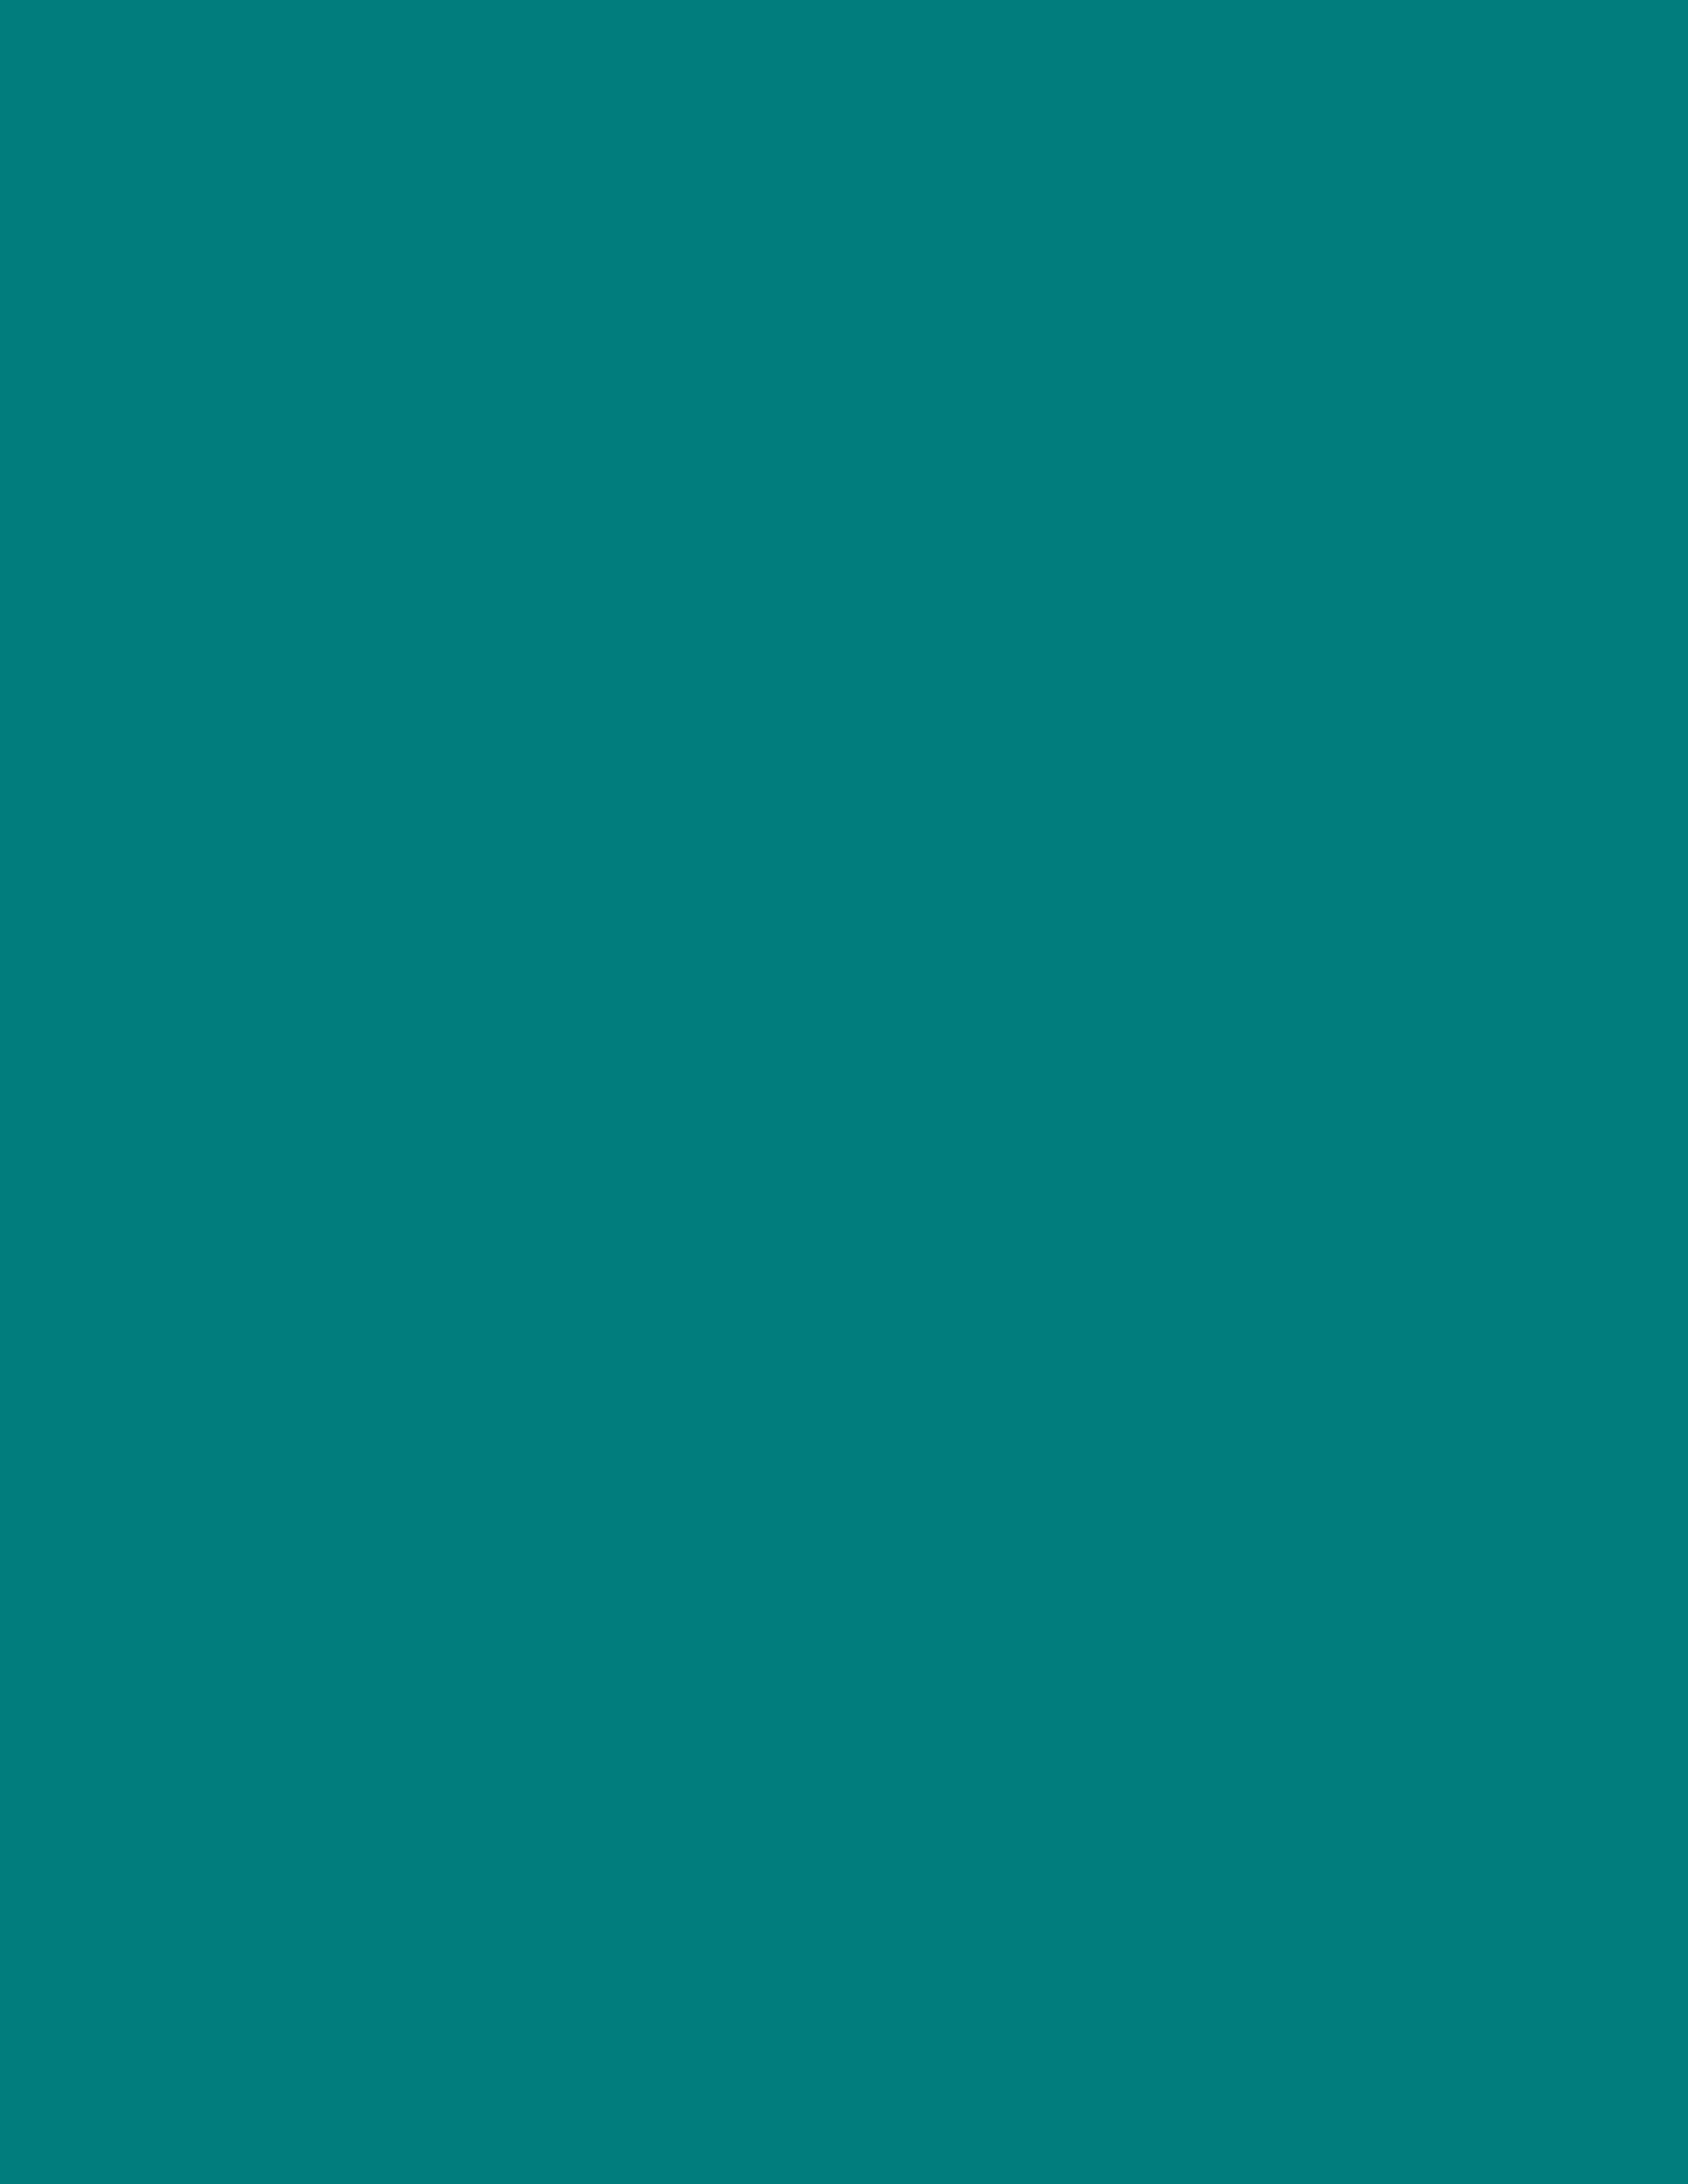 Sonoma Solids Color Teal